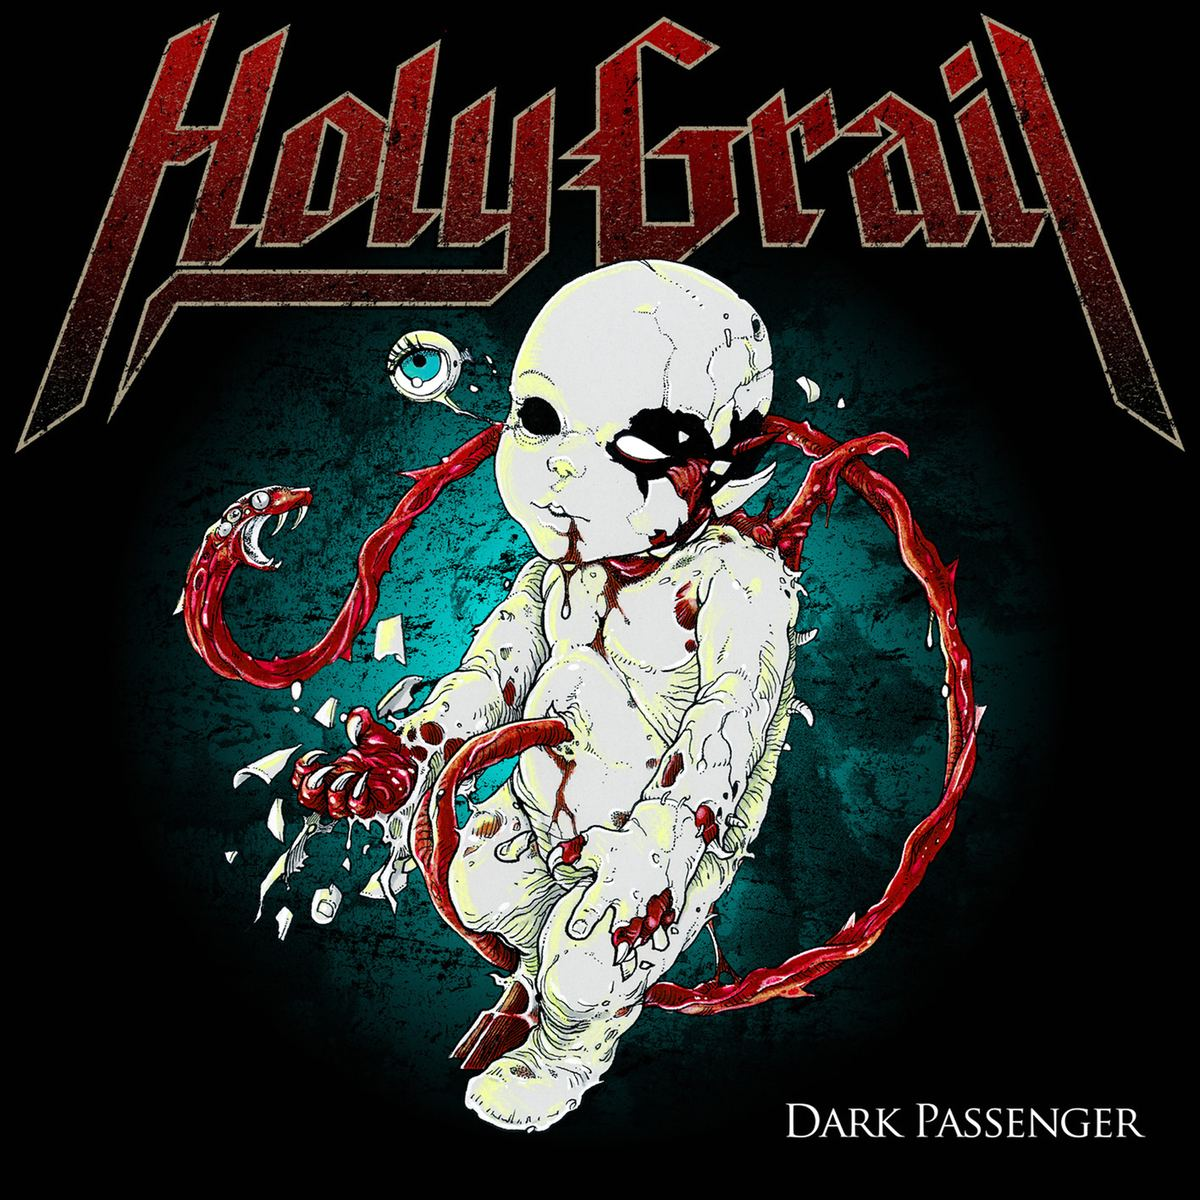 Holy Grail - Dark Passenger